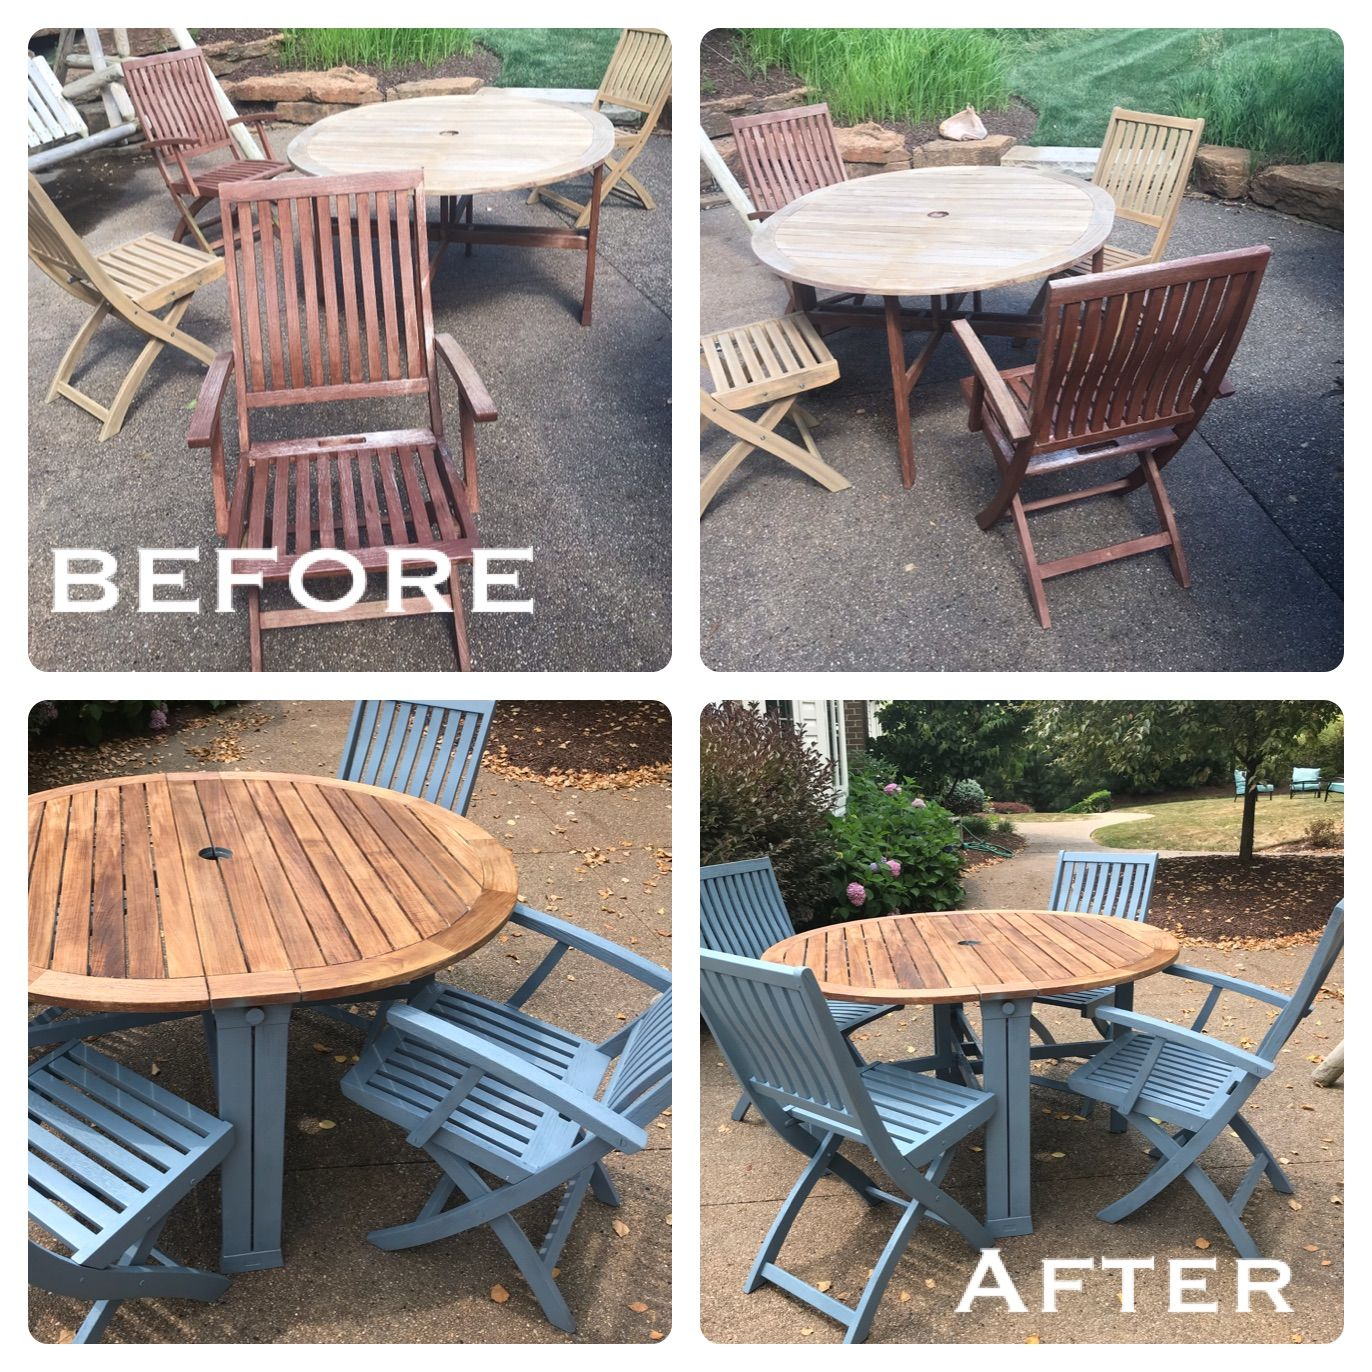 Teak Wood Outdoor Table - Wood Furniture ~ Easy Transformation